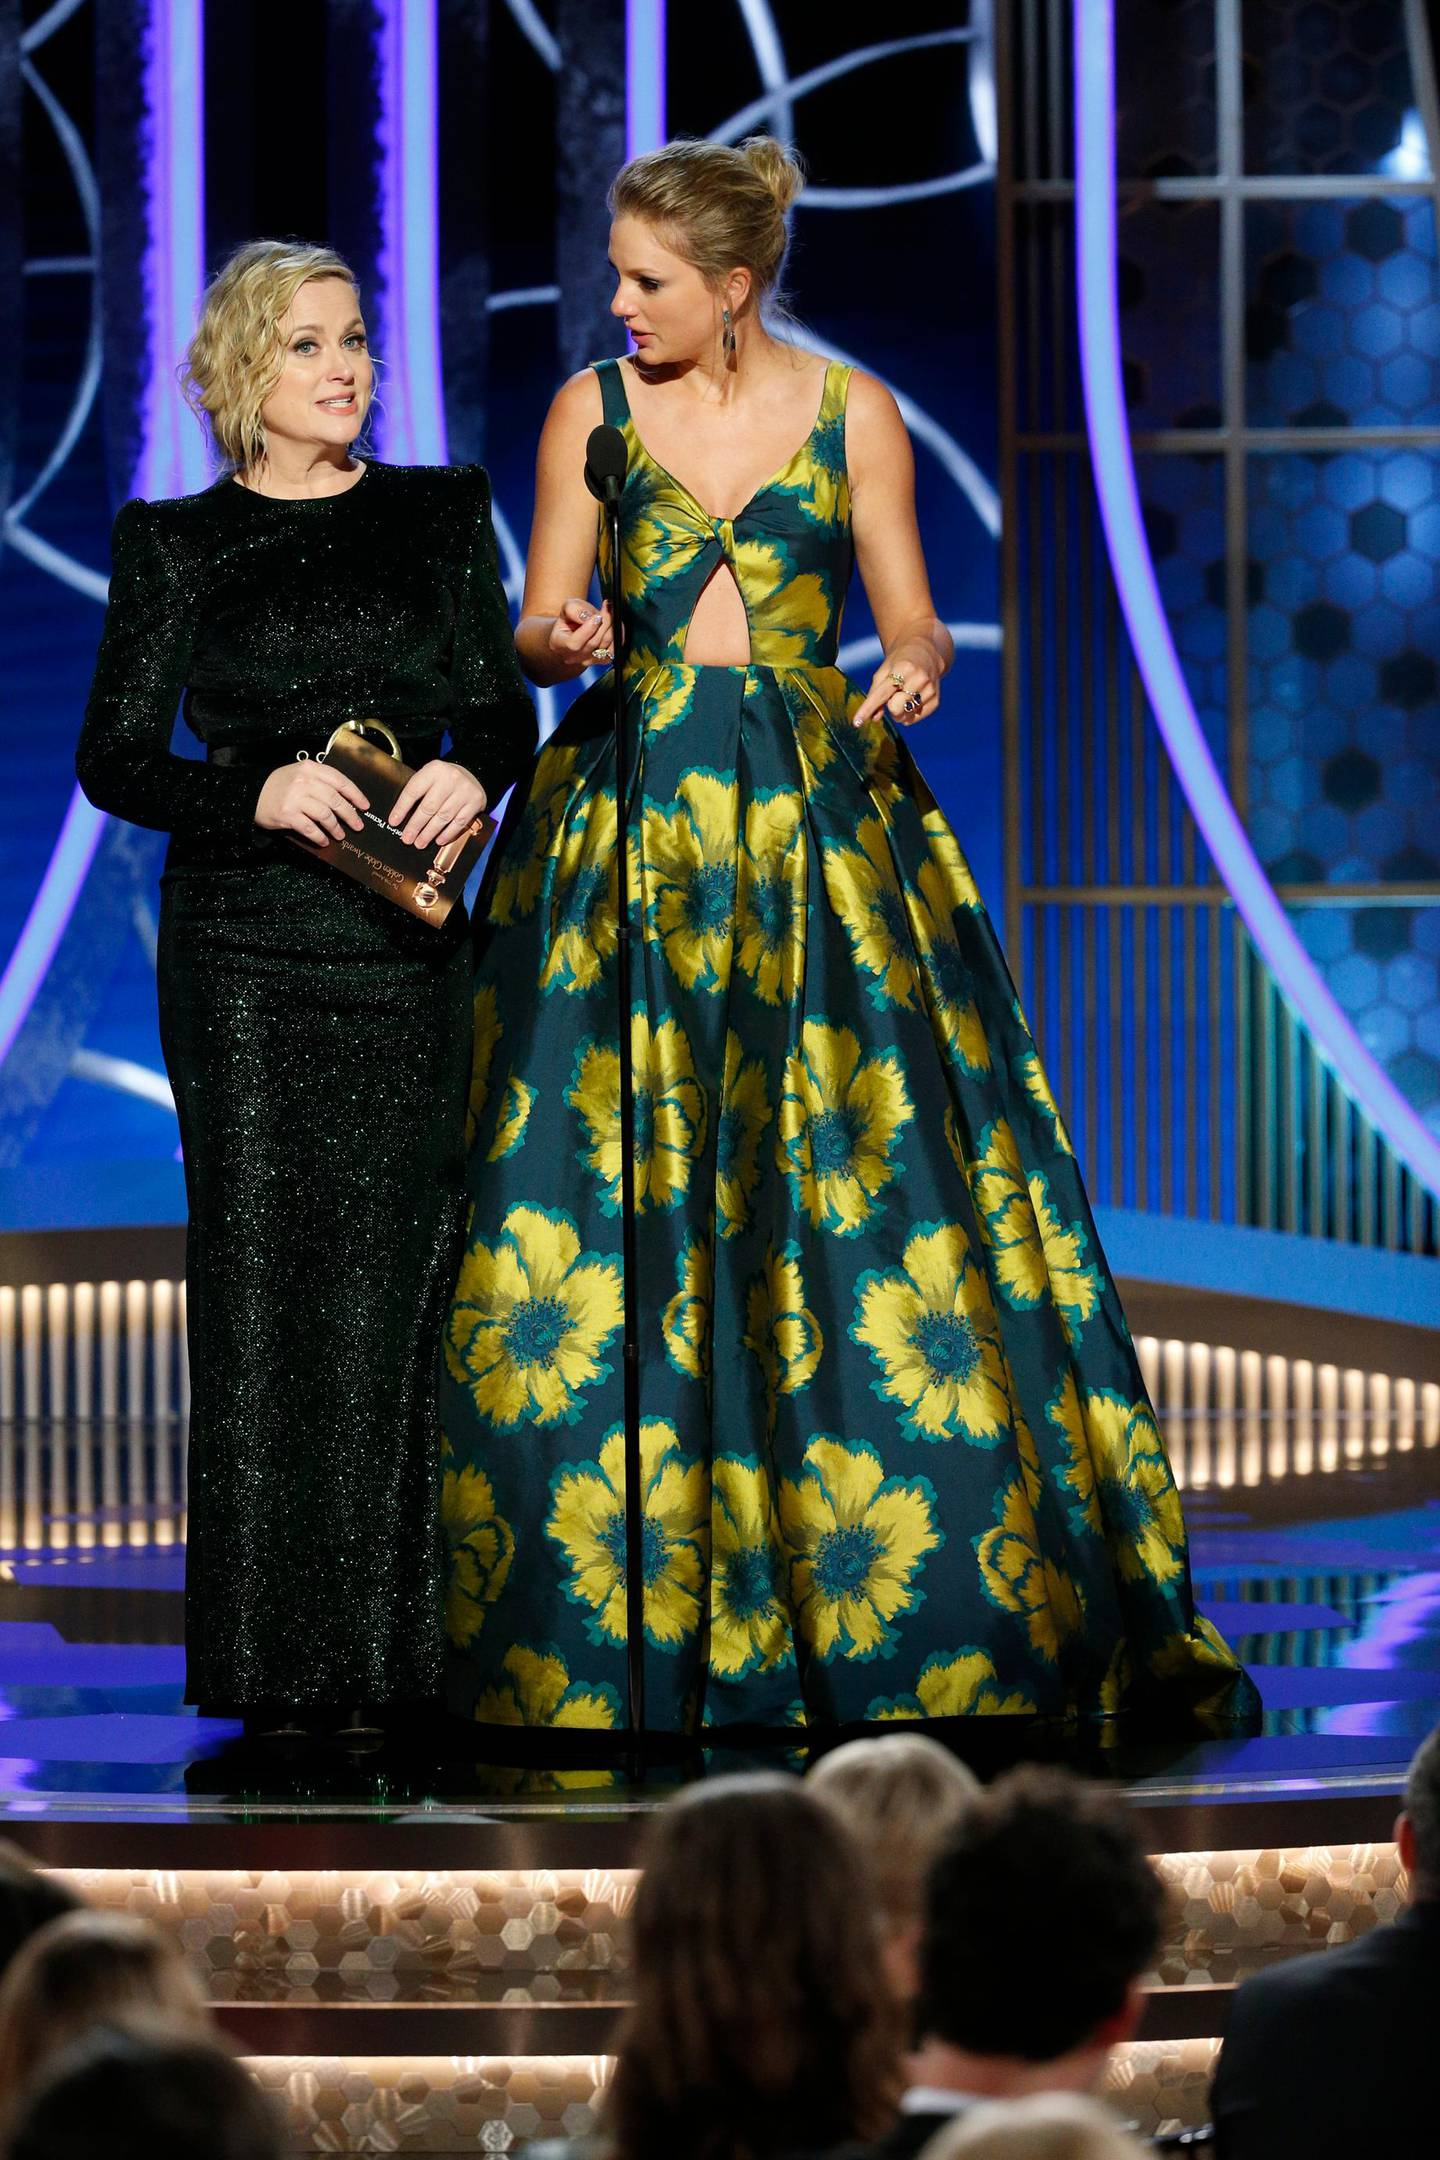 This image released by NBC shows presenters Amy Poehler, left, and Taylor Swift at the 77th Annual Golden Globe Awards at the Beverly Hilton Hotel in Beverly Hills, Calif., on Sunday, Jan. 5, 2020. (Paul Drinkwater/NBC via AP)